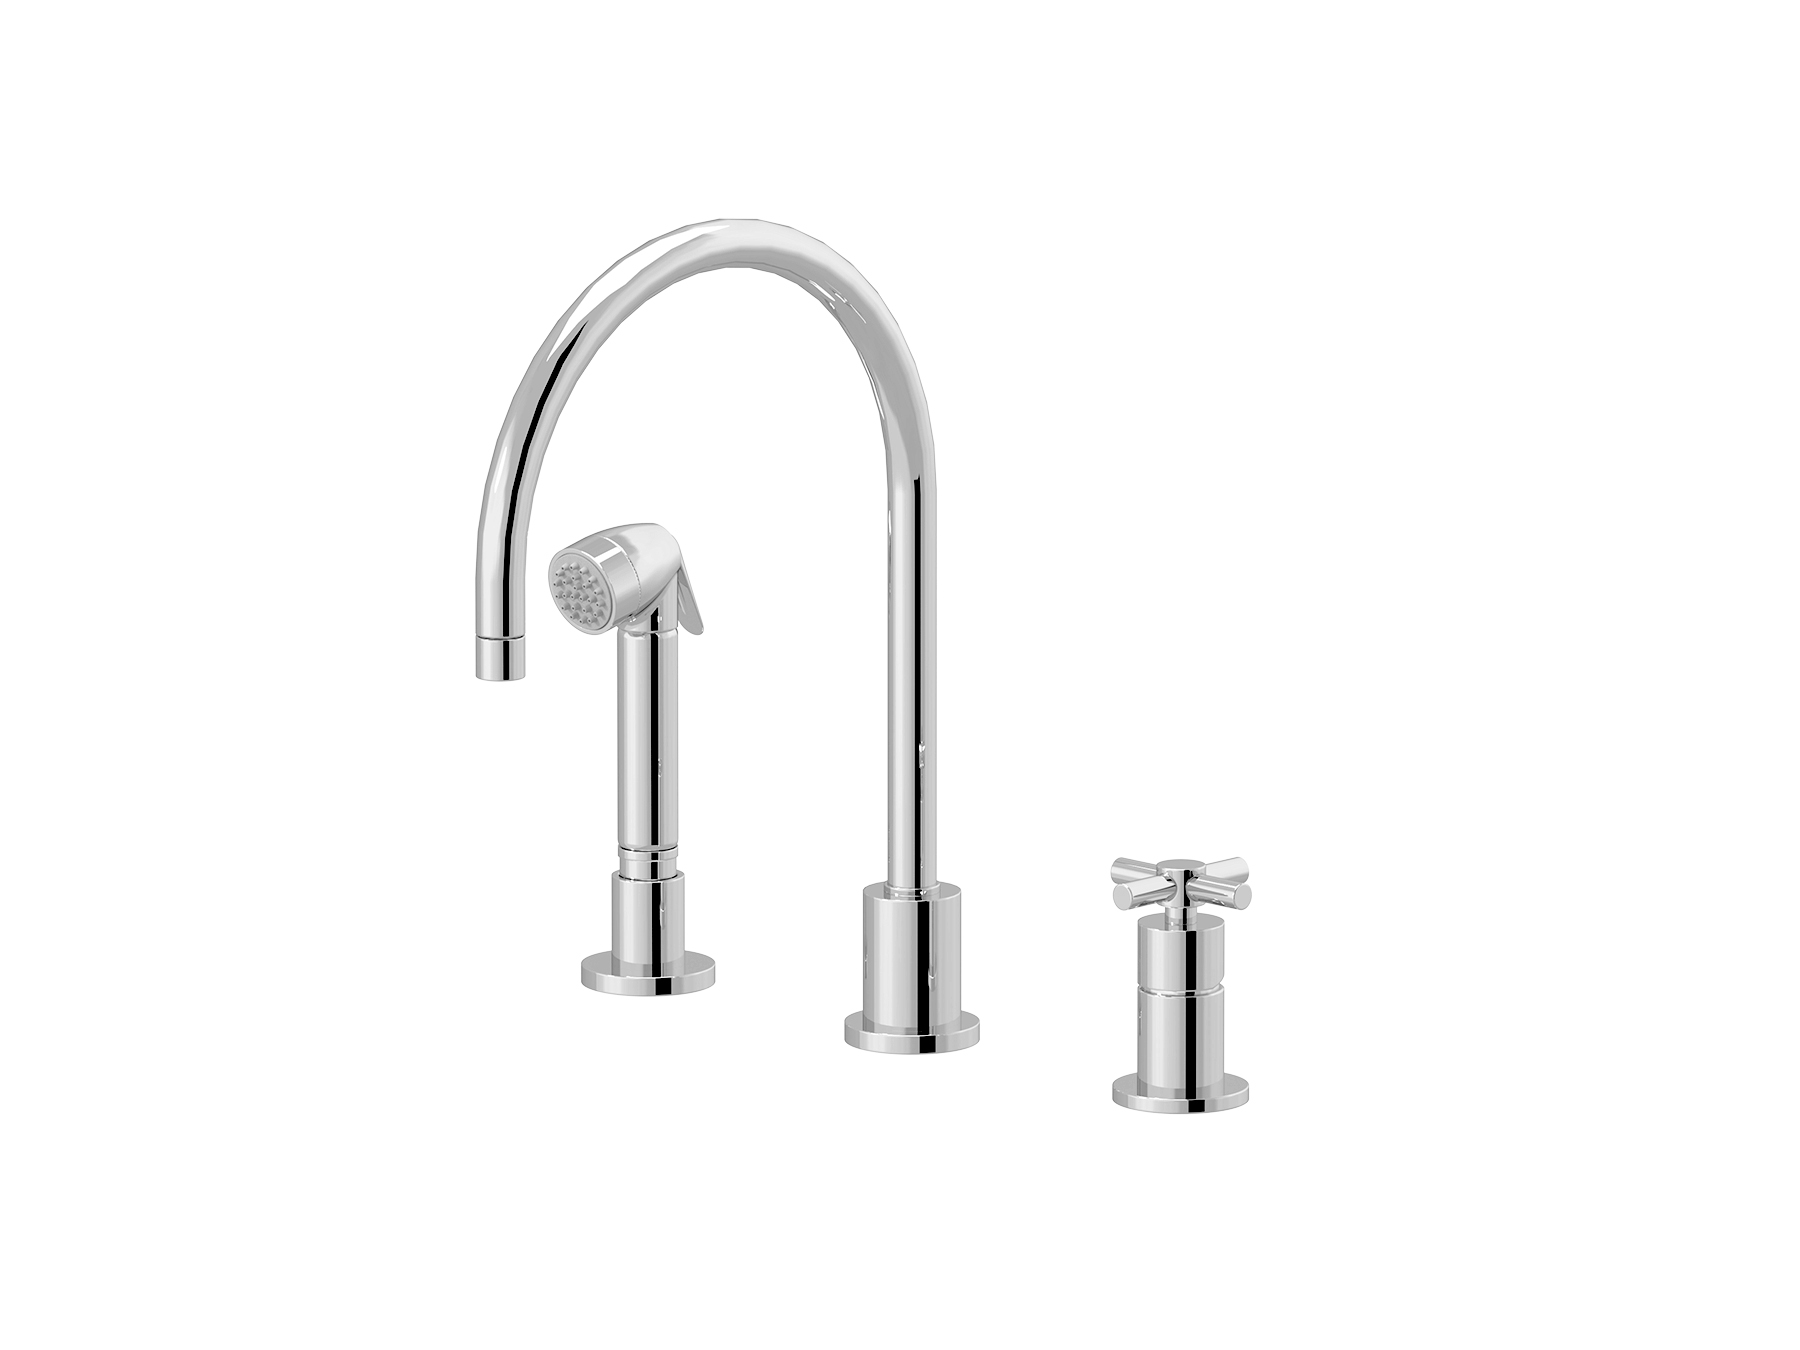 Single-lever kitchen mixer, great spout, handshower 4532.--.28